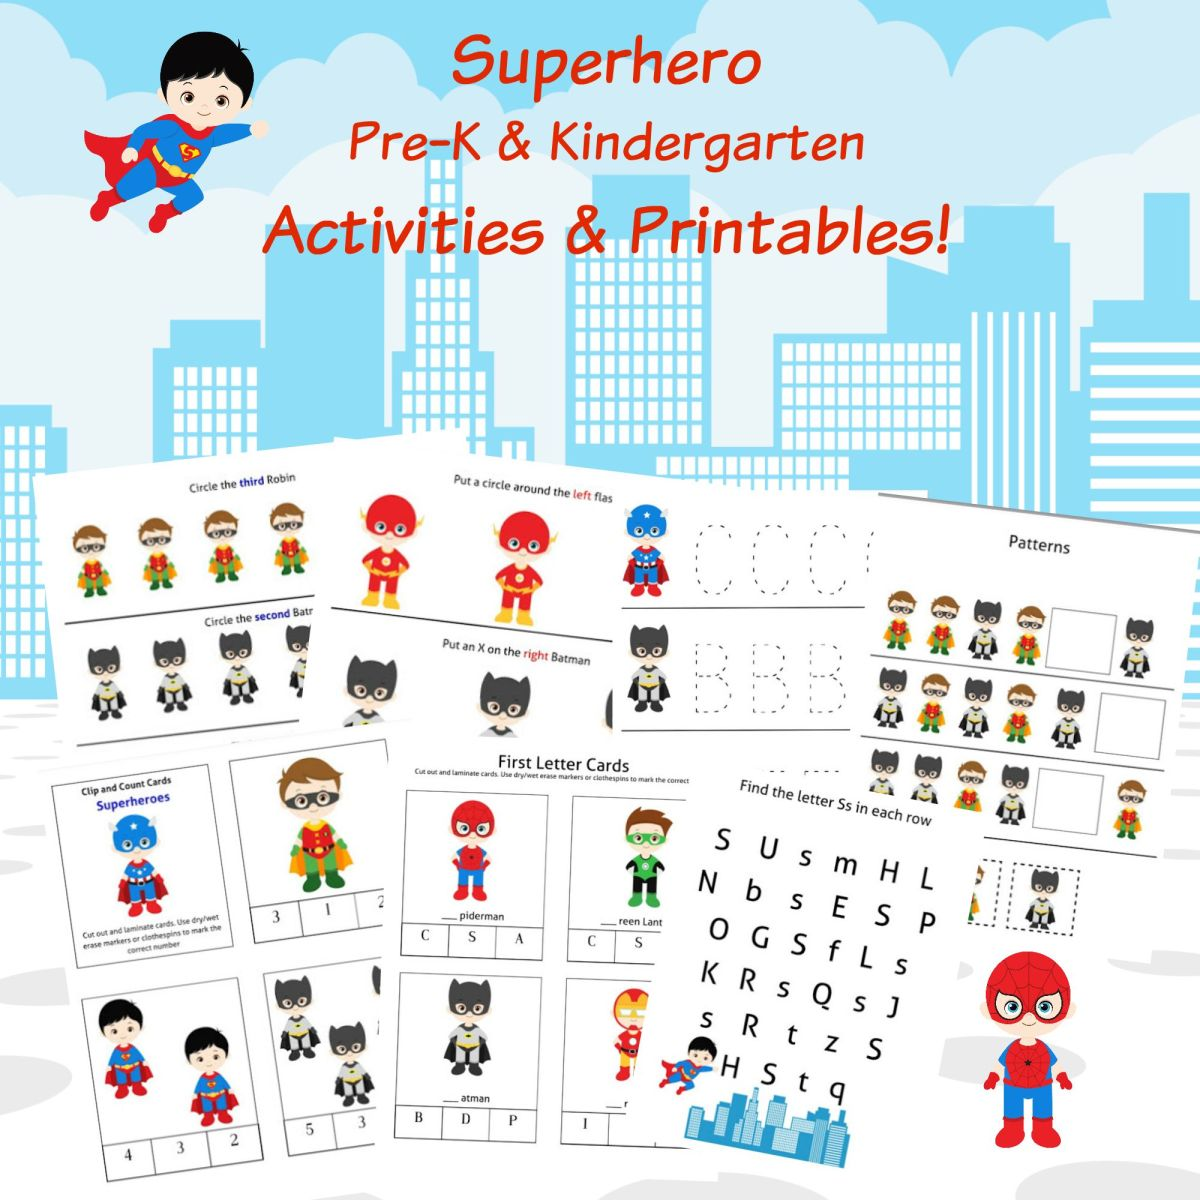 FREE Superheroes Printables & Activities